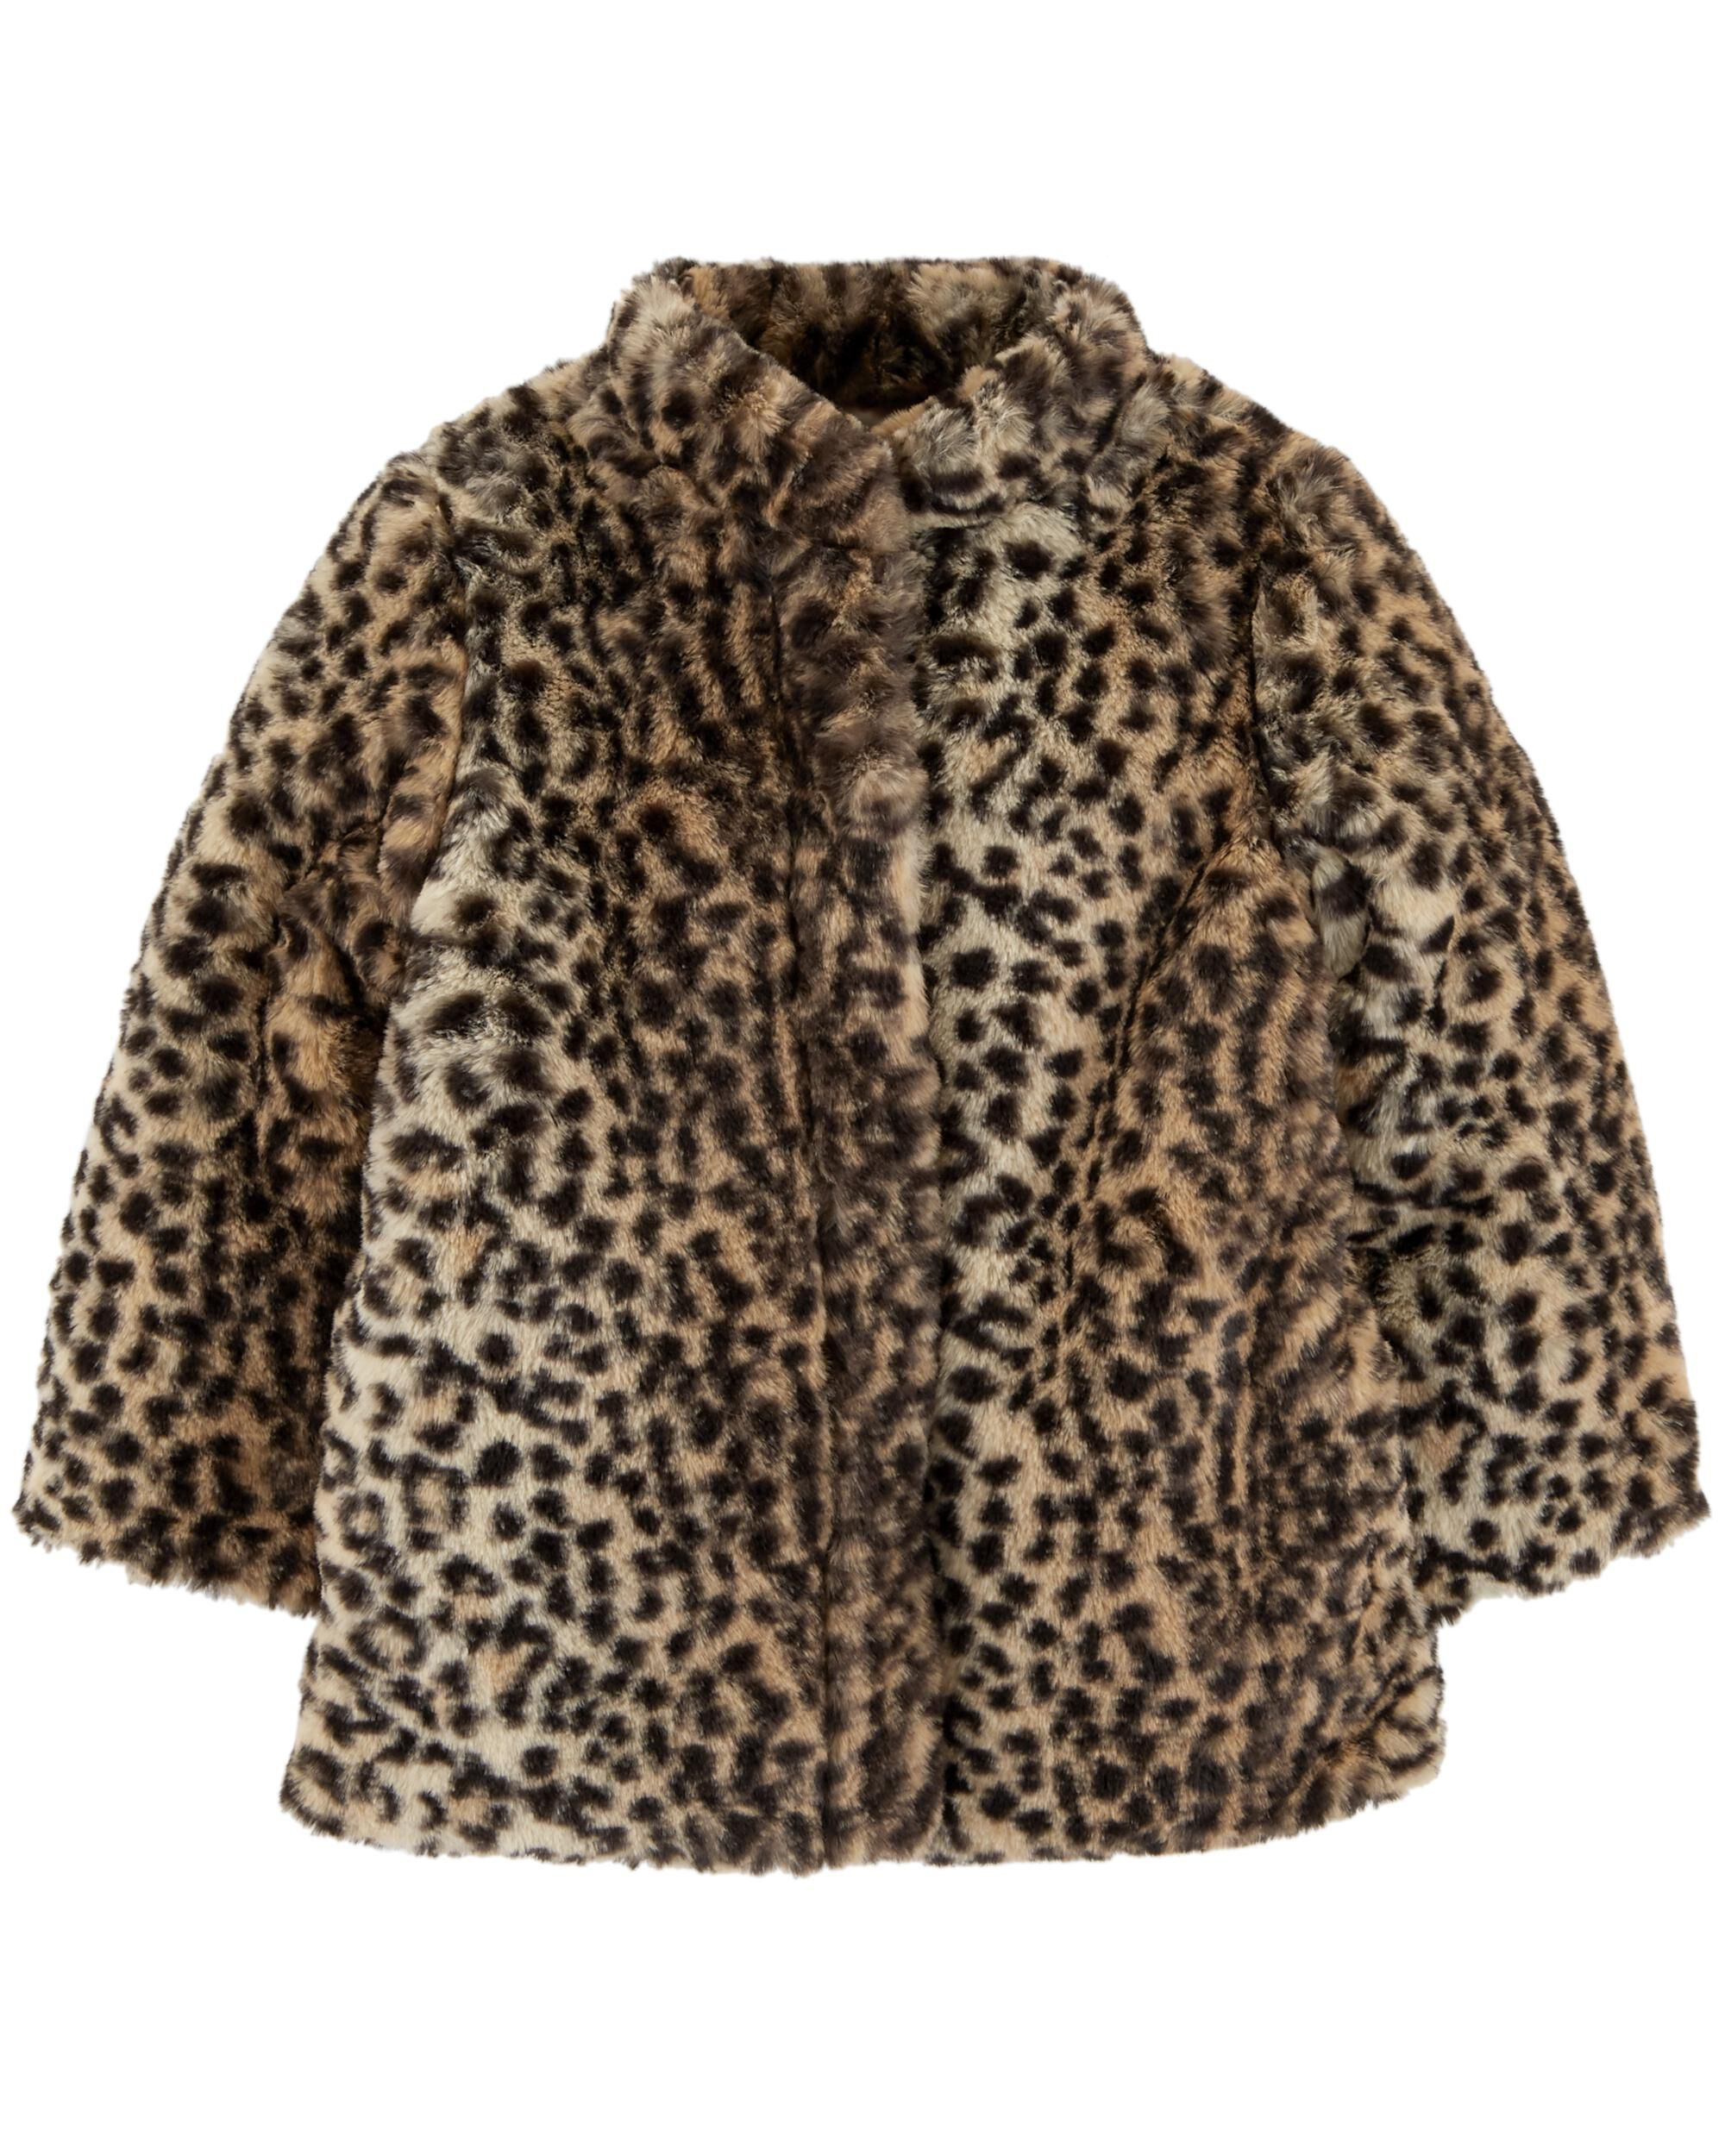 cc19ab5528d4 Cheetah Faux Fur Coat